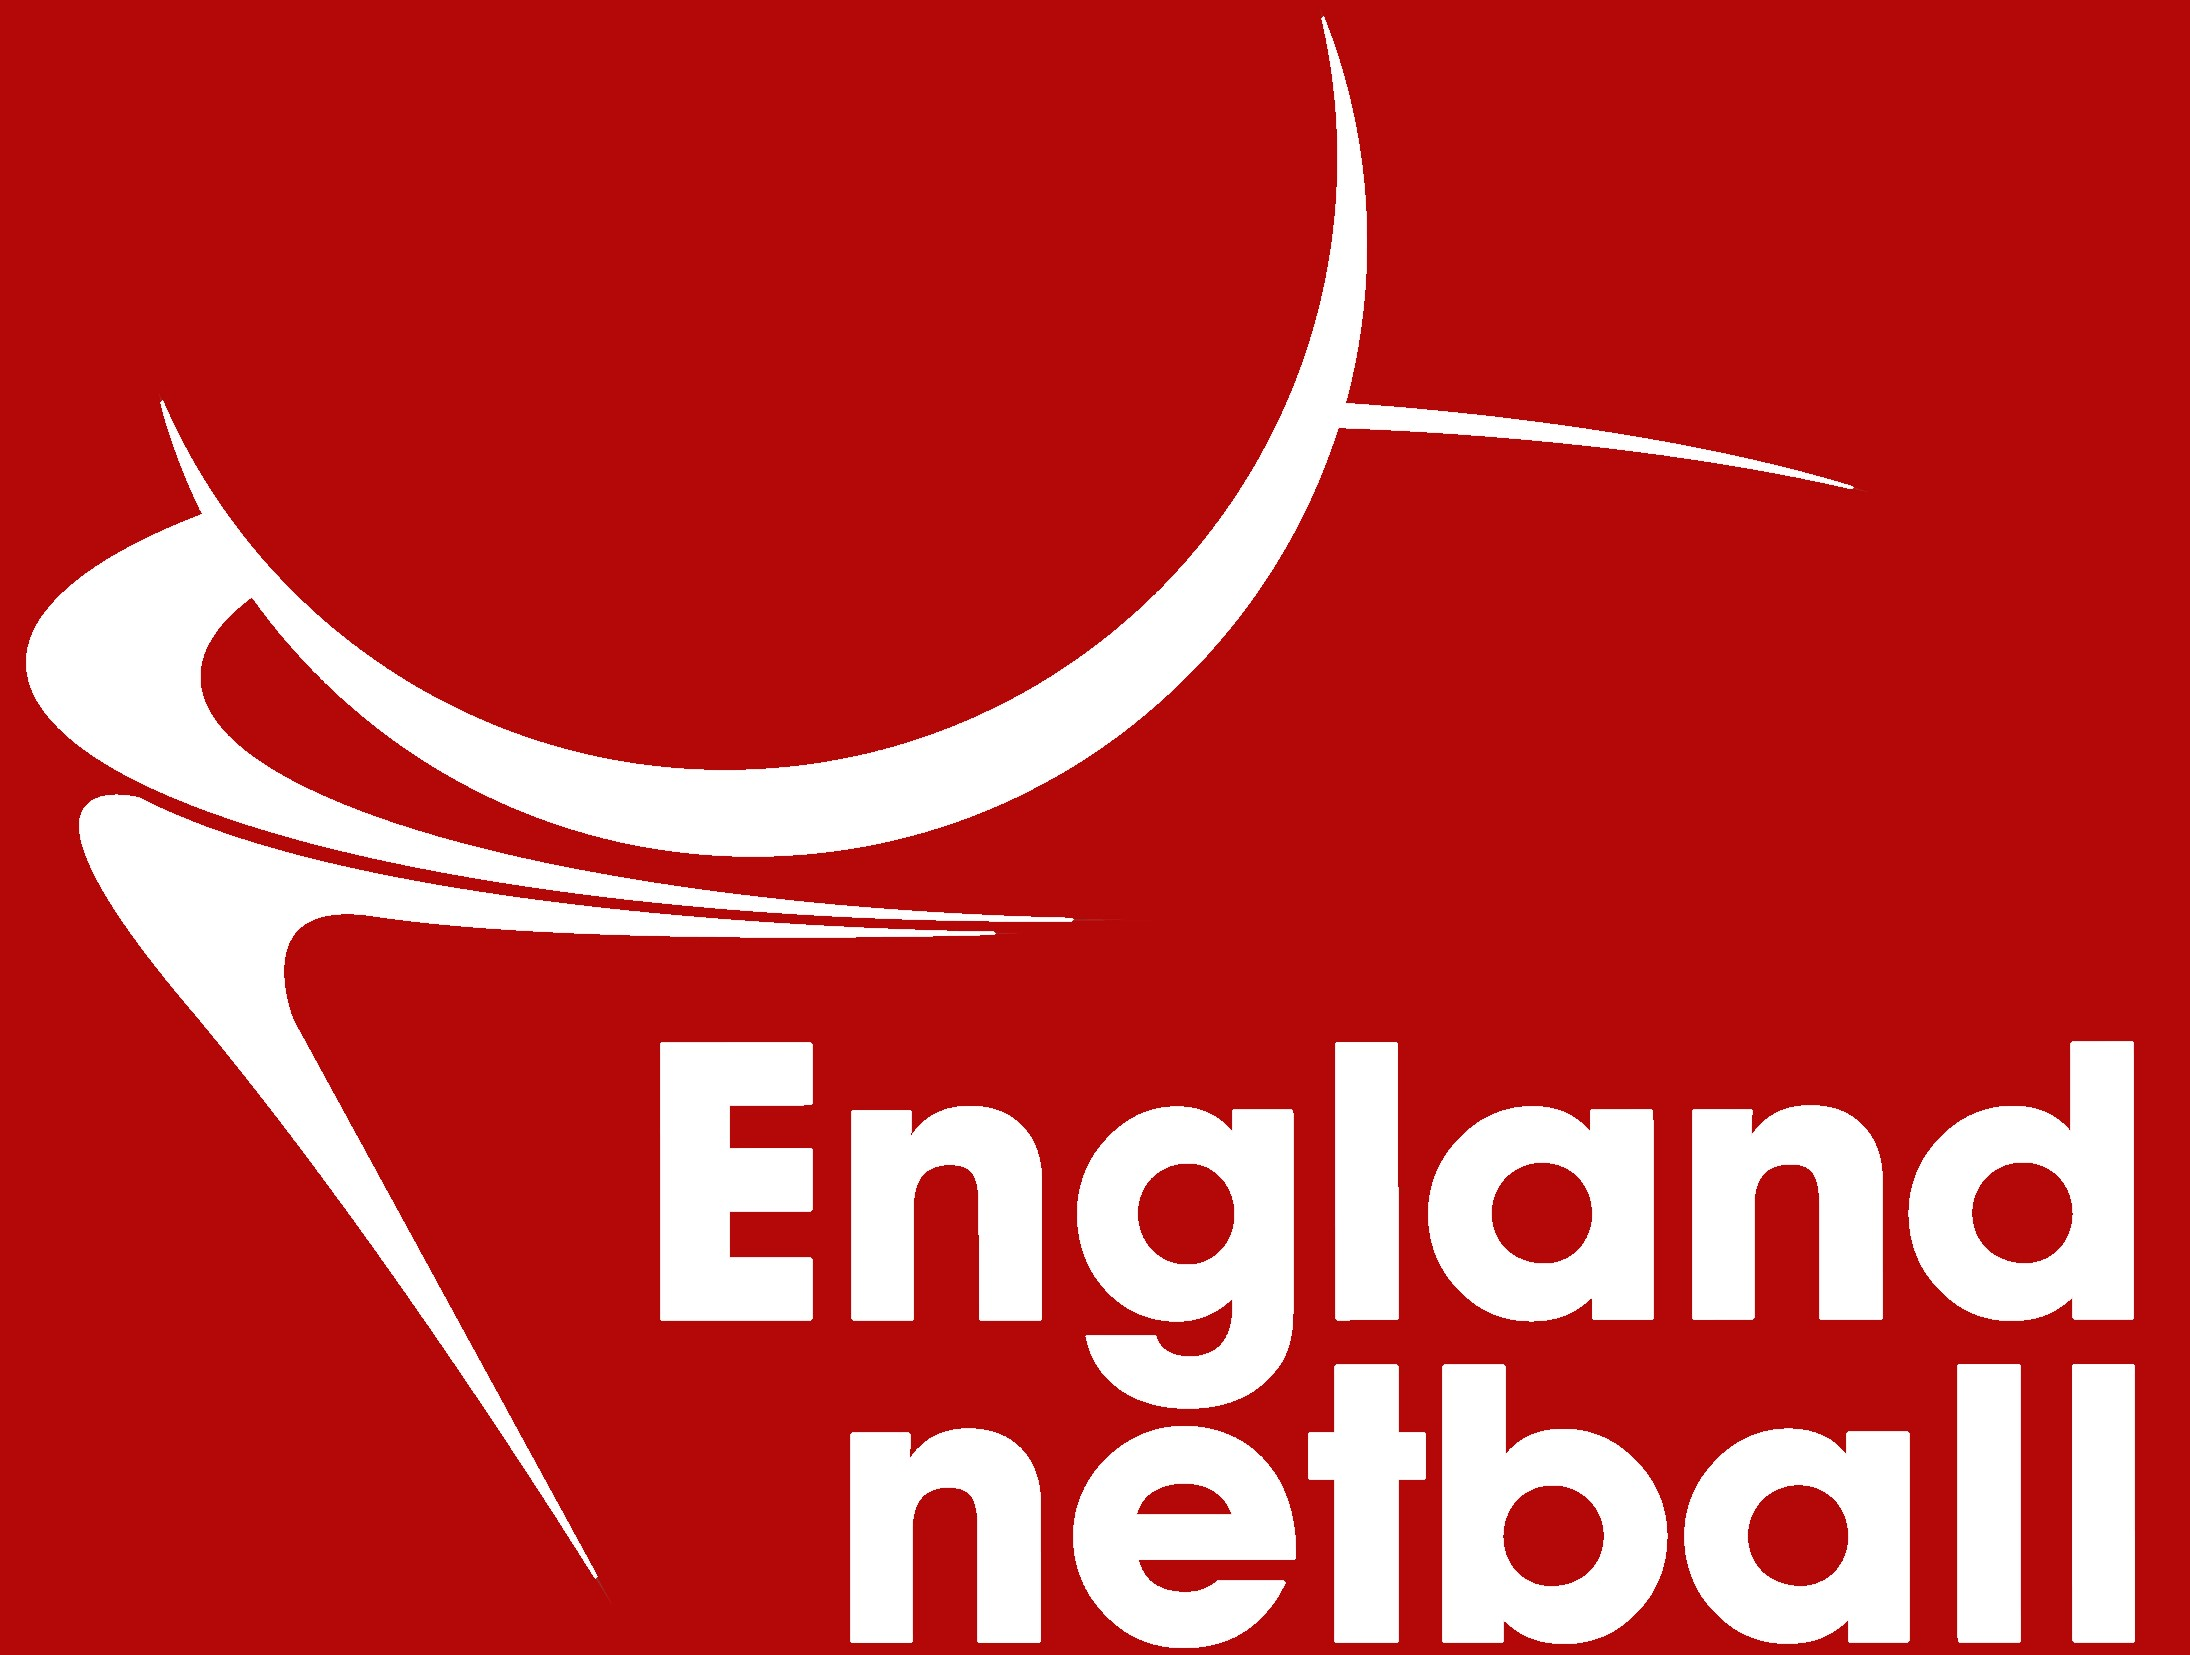 England Netball Help Centre home page